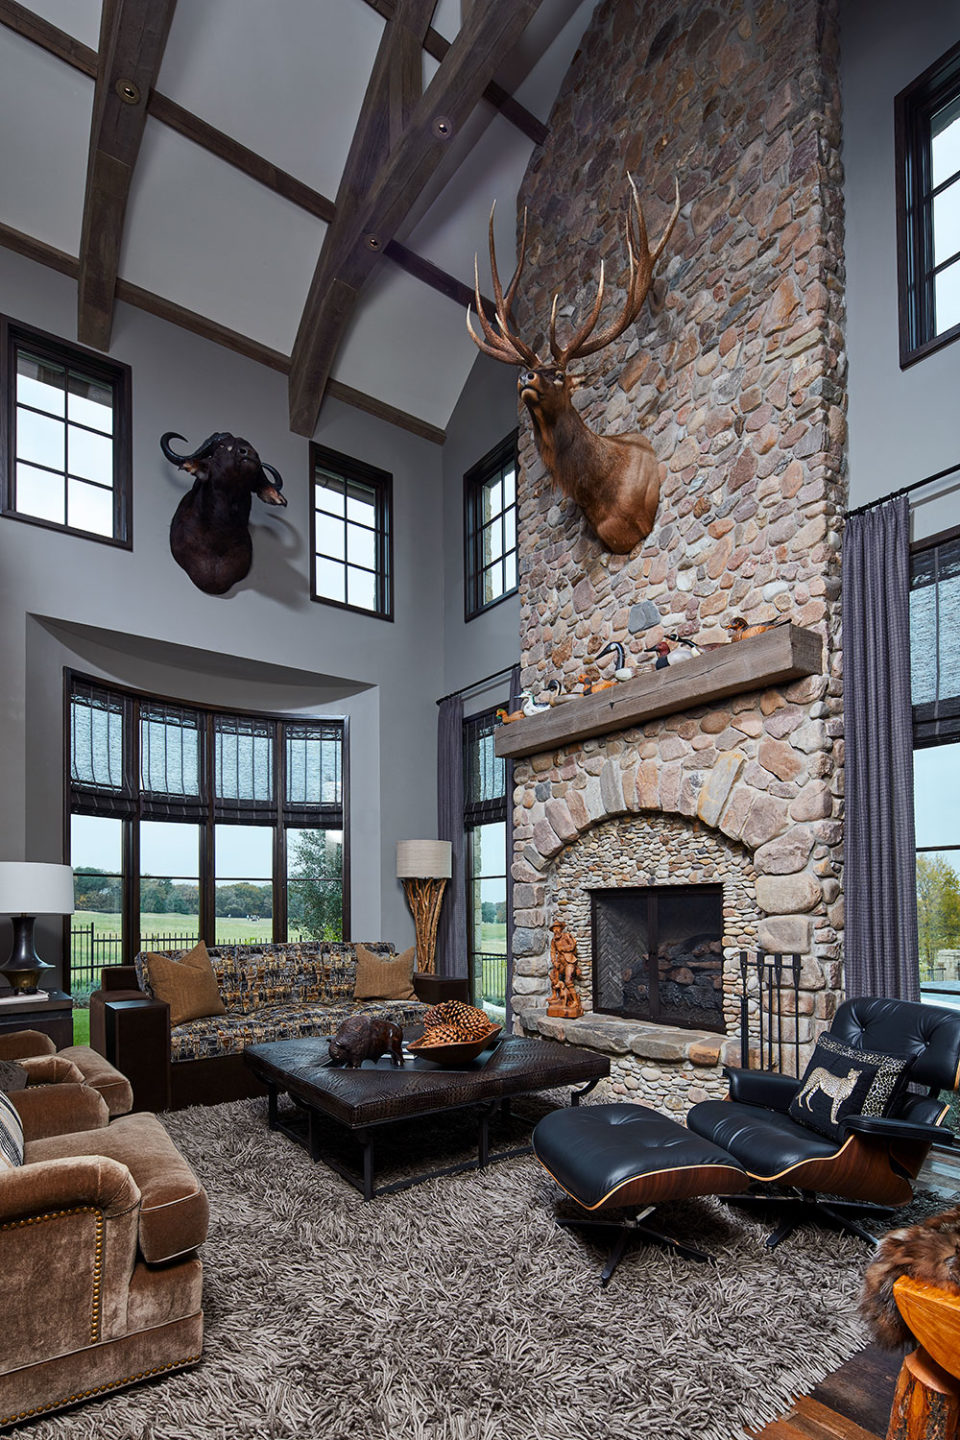 Lodge-like Office/Study/Entertainment Room with Two-Story Stone Fireplace